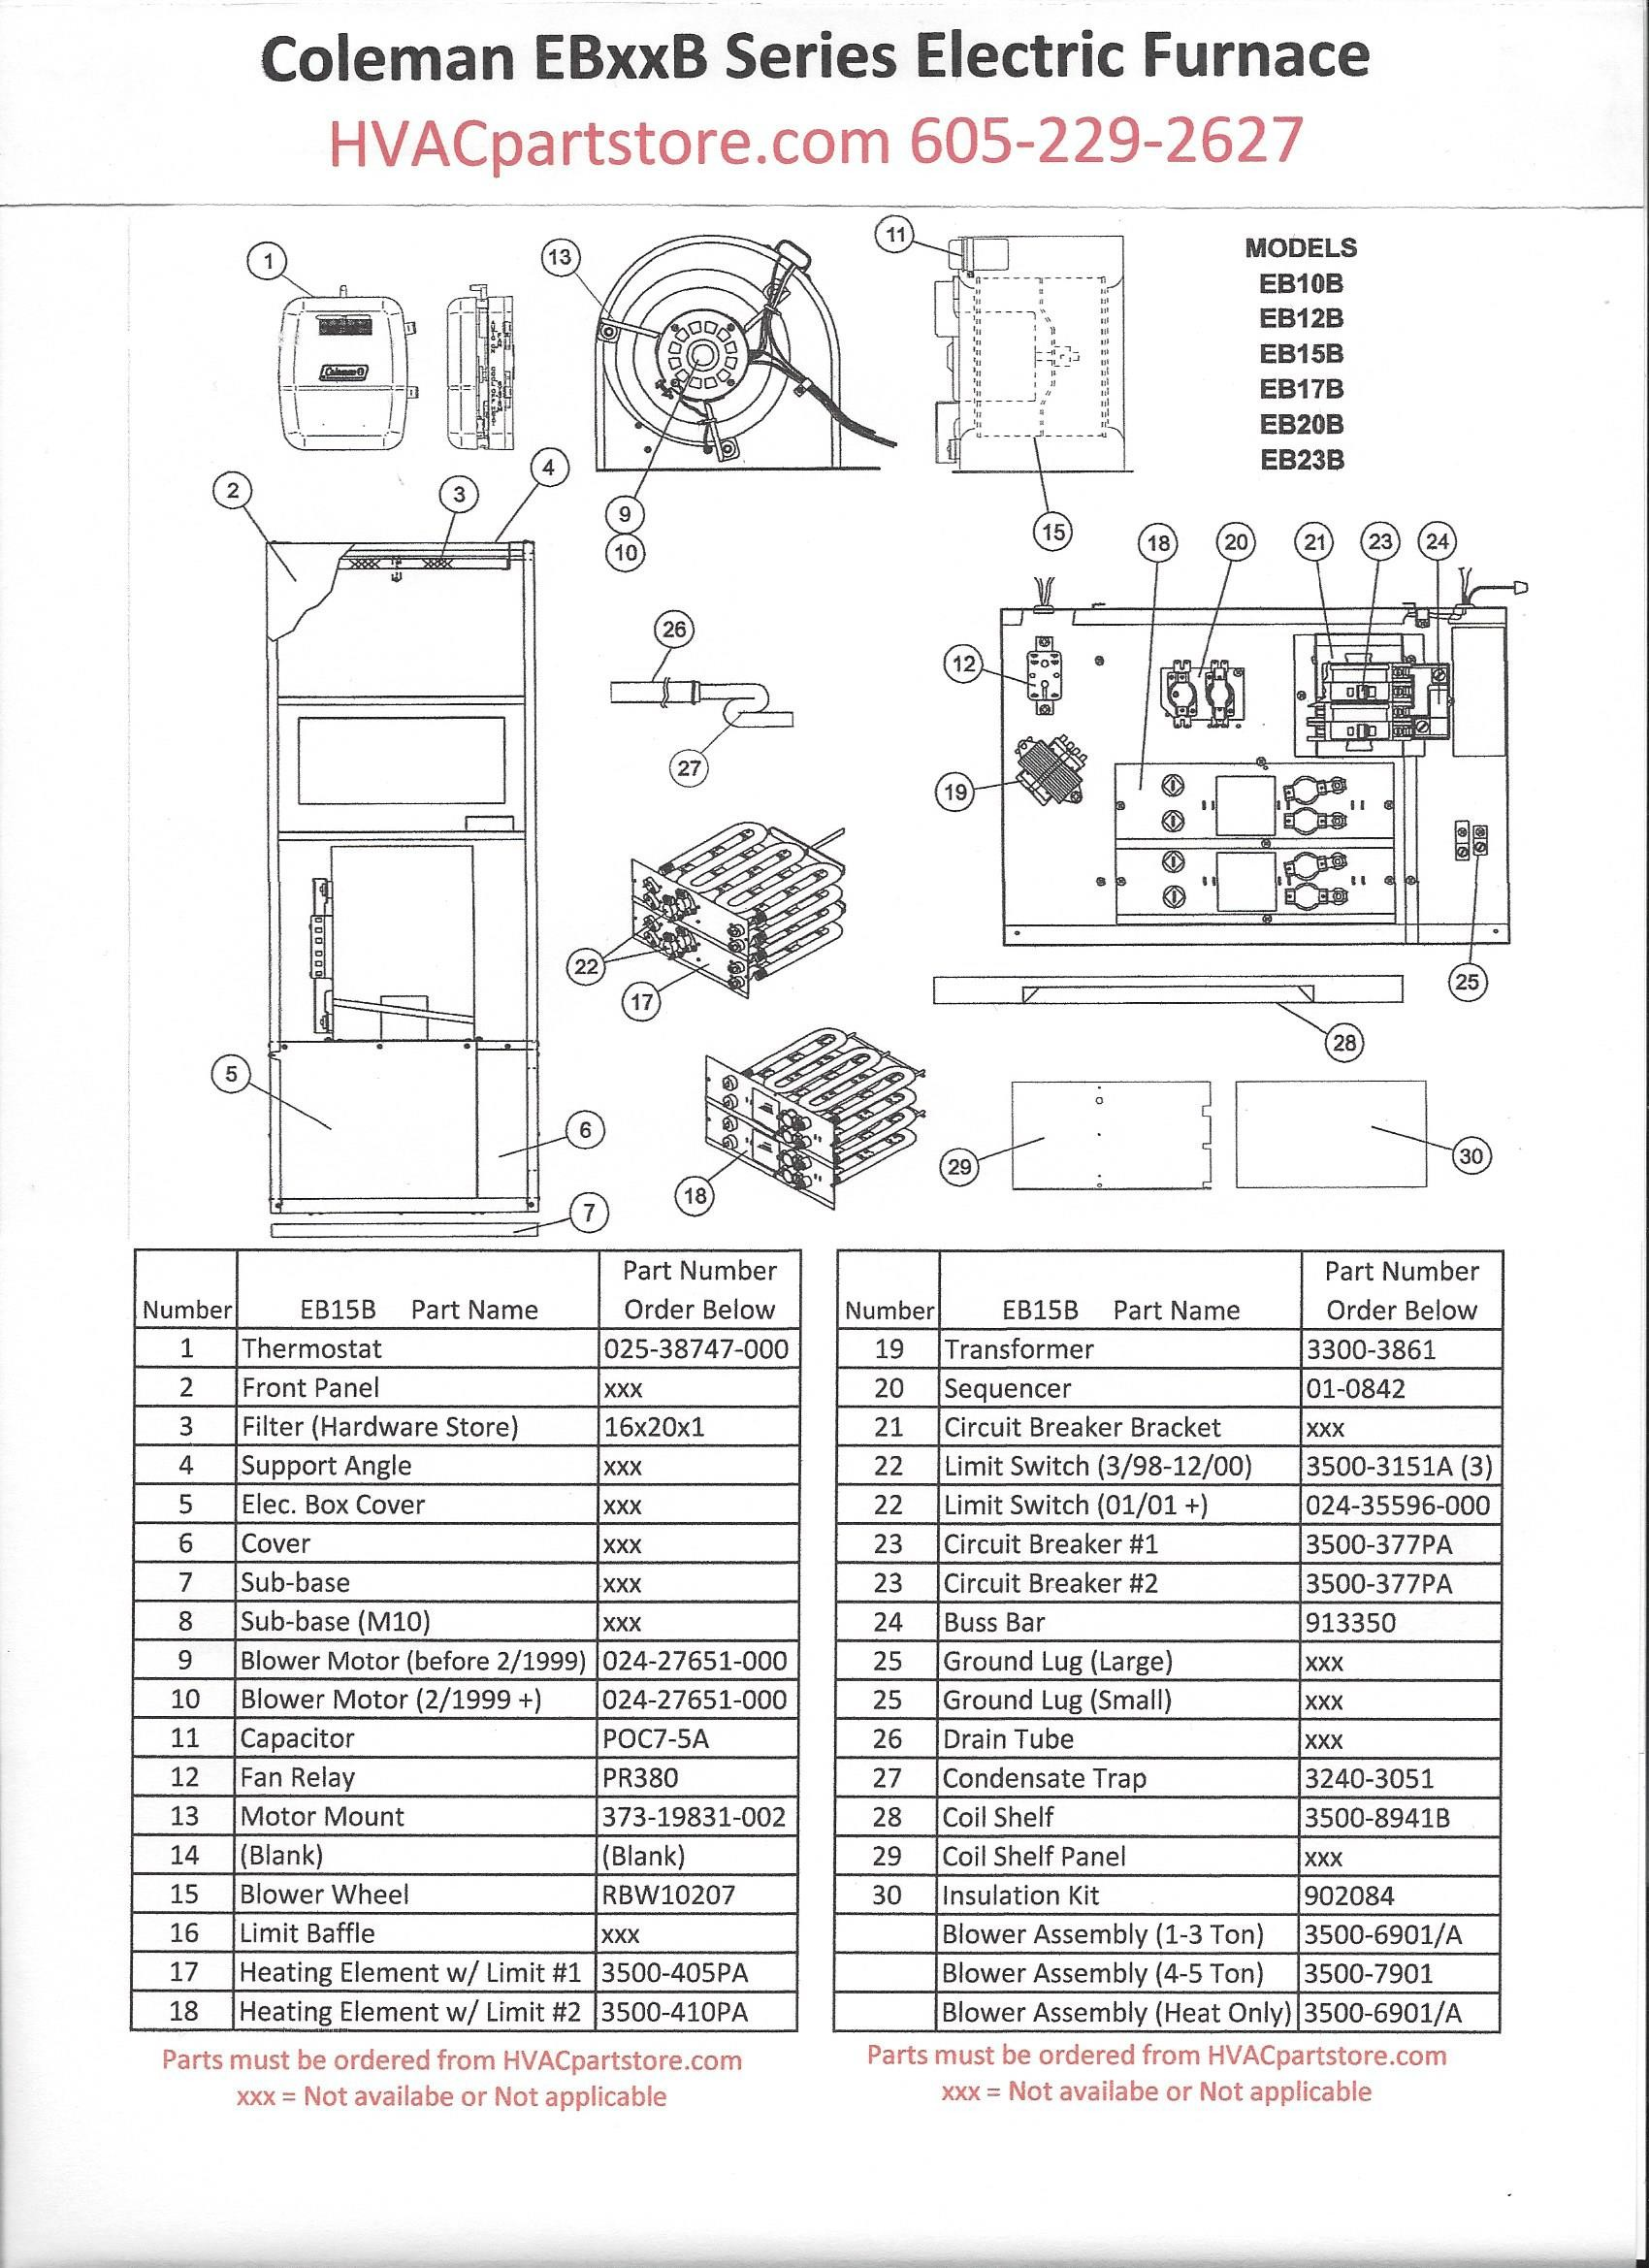 Intertherm 015h Contactor Wiring Diagram Wiring Diagram Ameristar Air  Handler Wiring Diagram Intertherm Air Handler Wiring